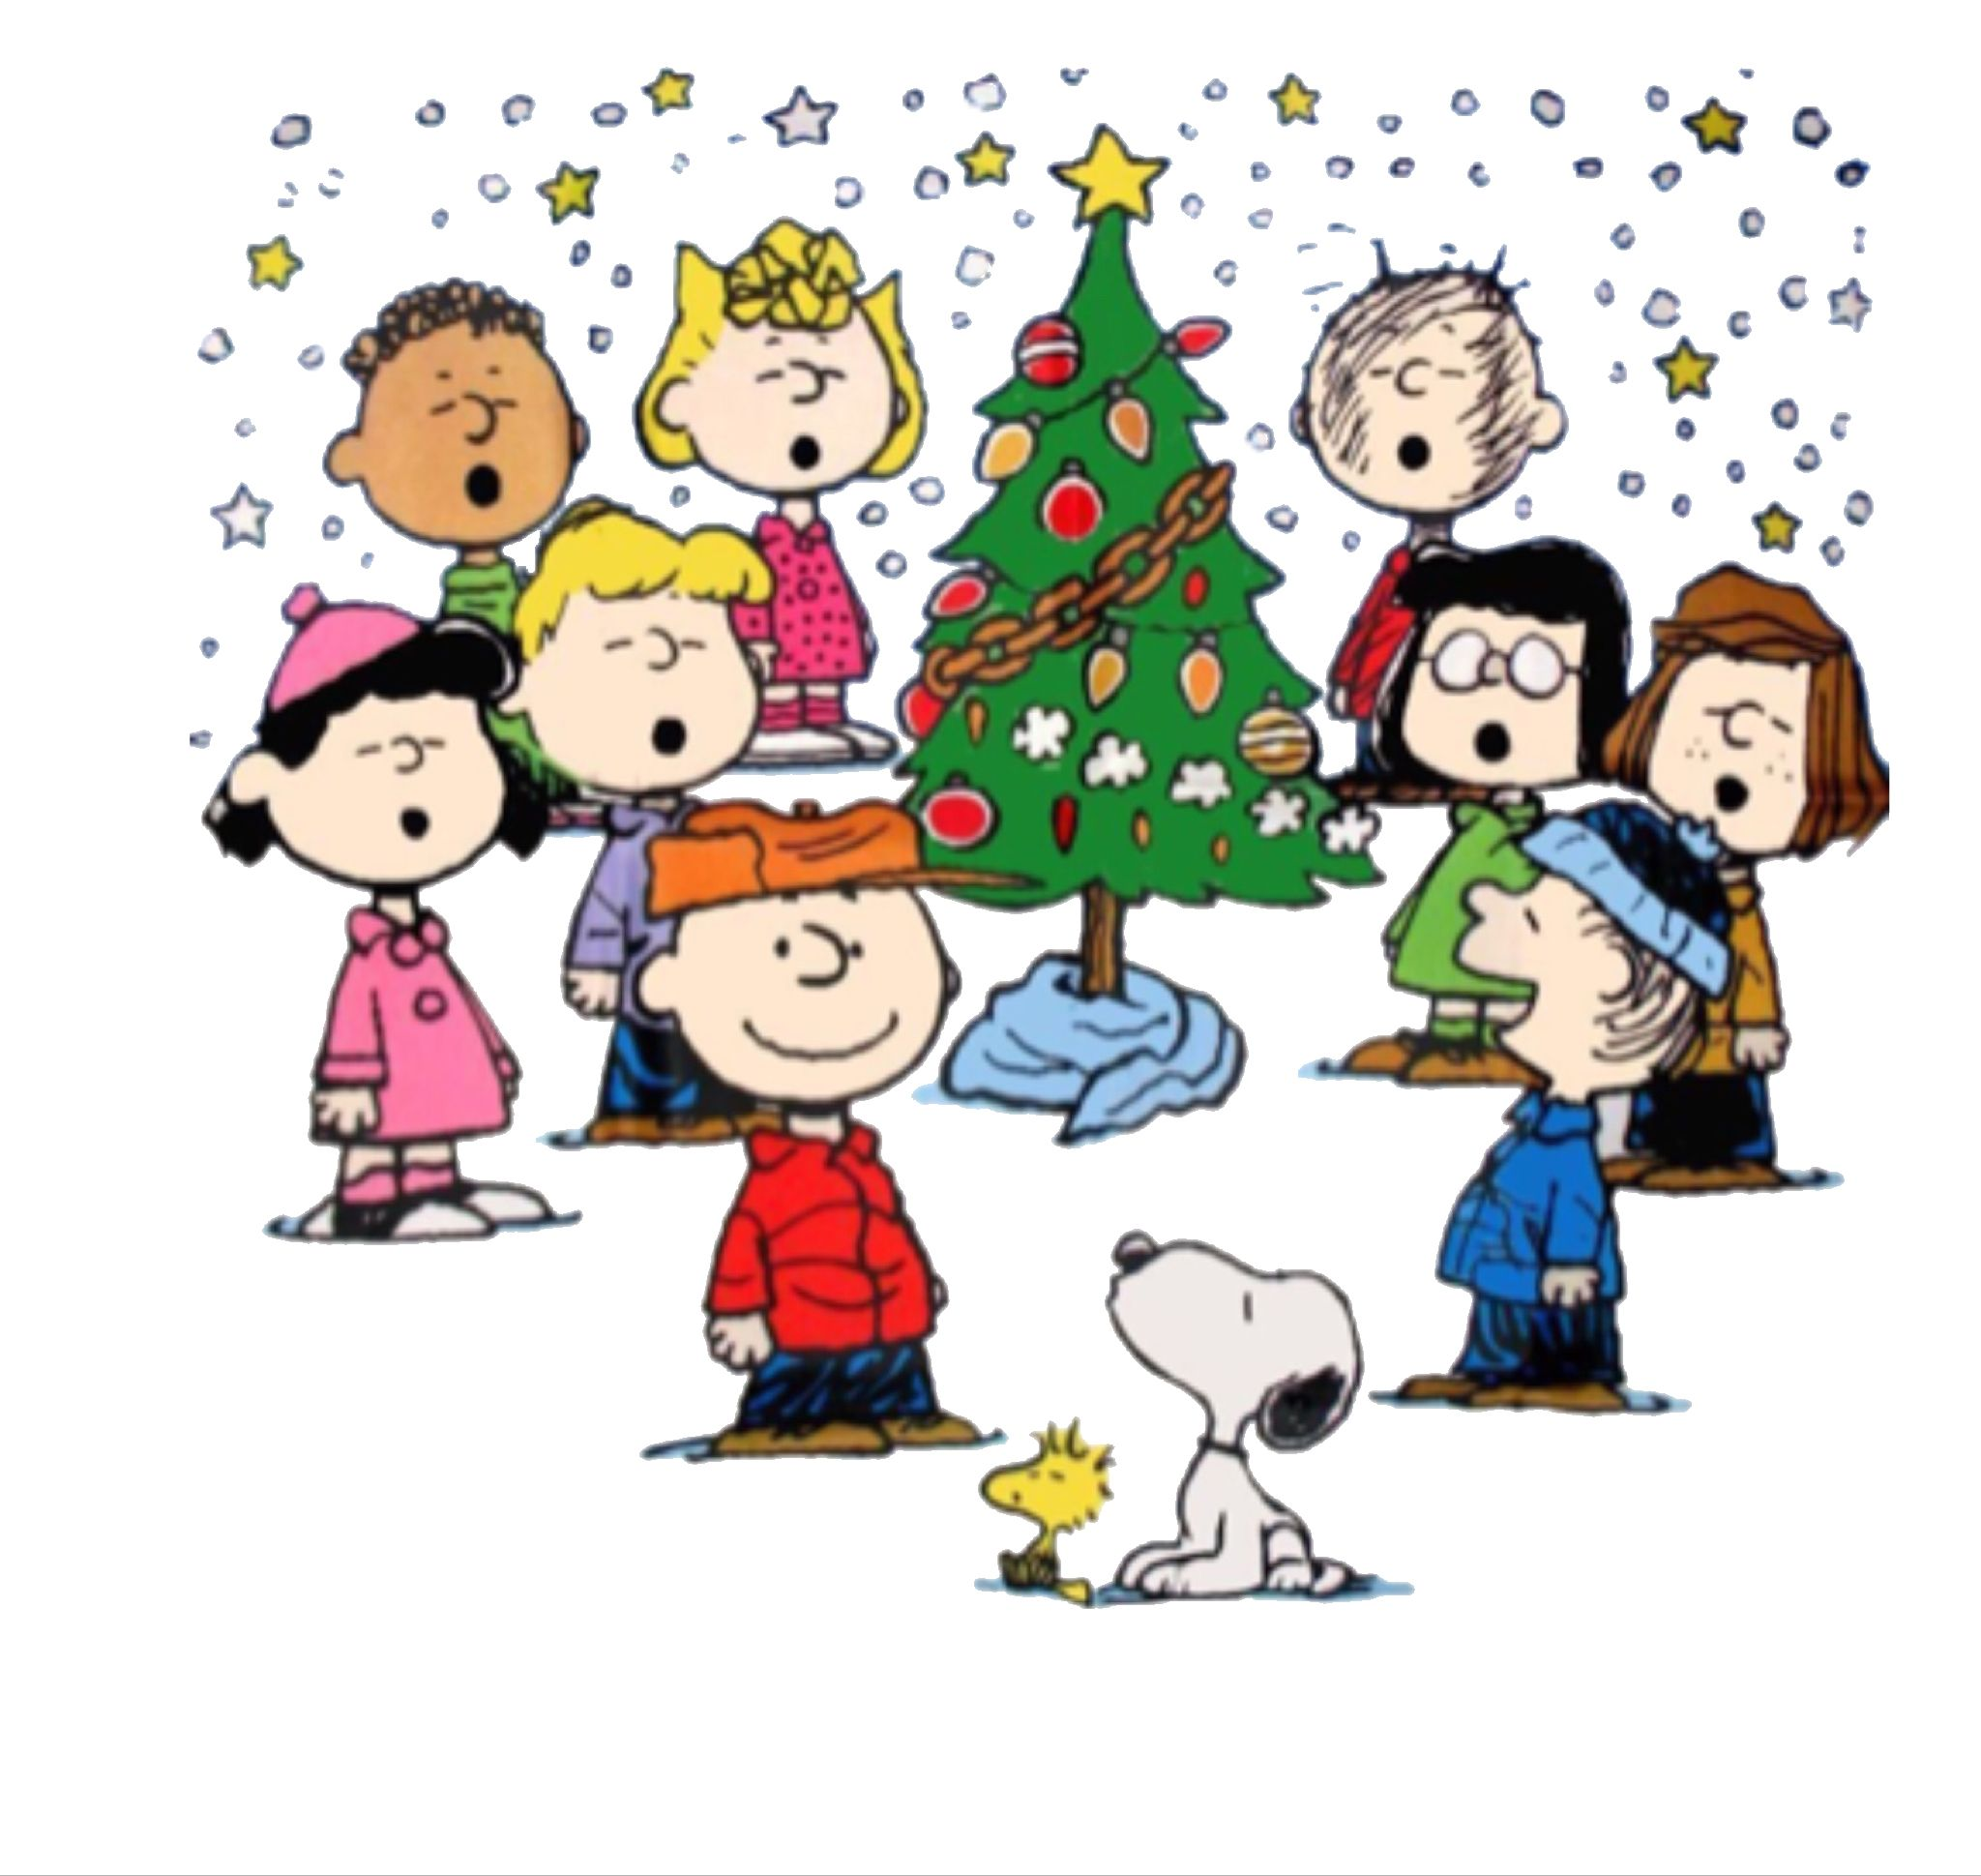 Pin By Lisa On Peanuts Png Stickers Snoopy Christmas Charlie Brown And Snoopy Charlie Brown Christmas